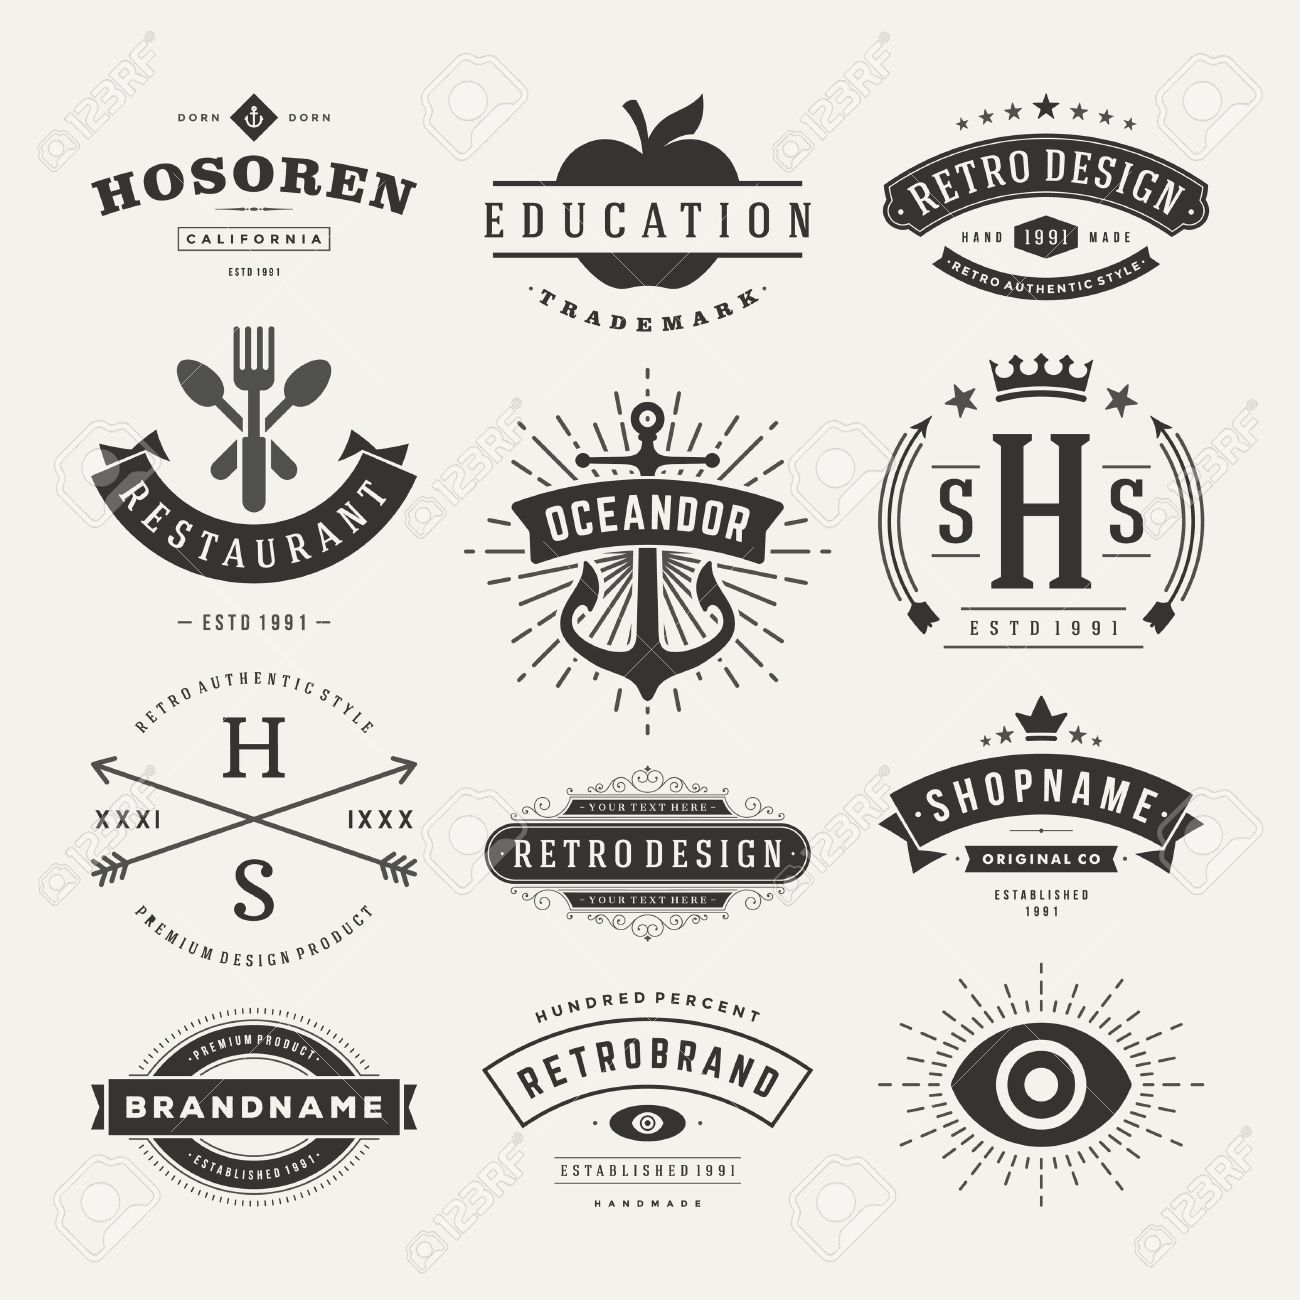 Retro Vintage Insignias or icons set. Vector design elements, business signs, icons, identity, labels, badges and objects. Stock Vector - 33257176